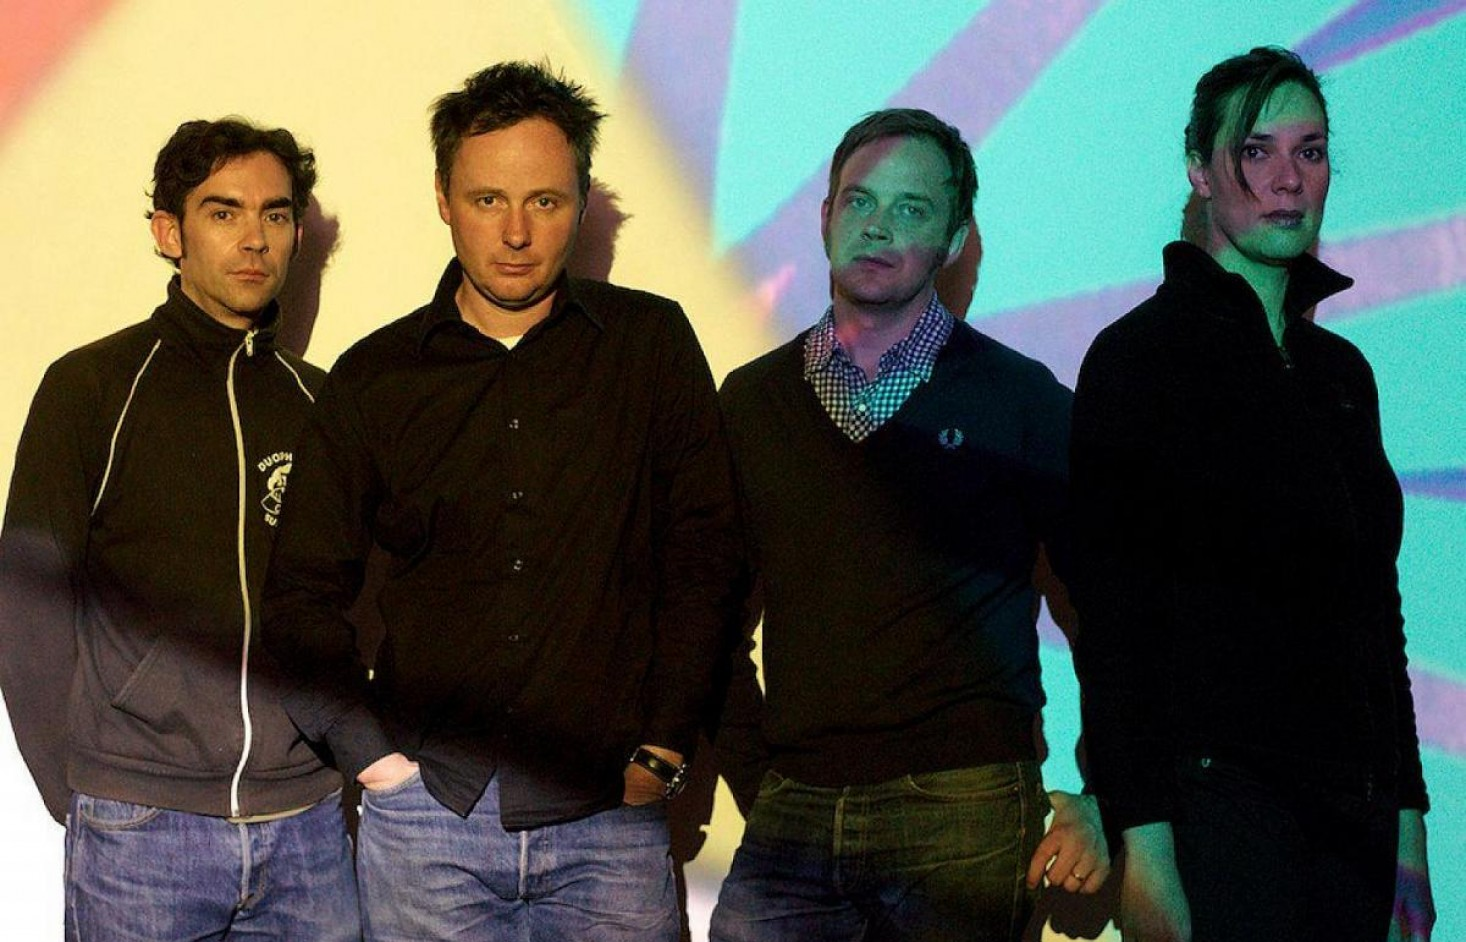 Reunited Stereolab visits Copenhagen in August